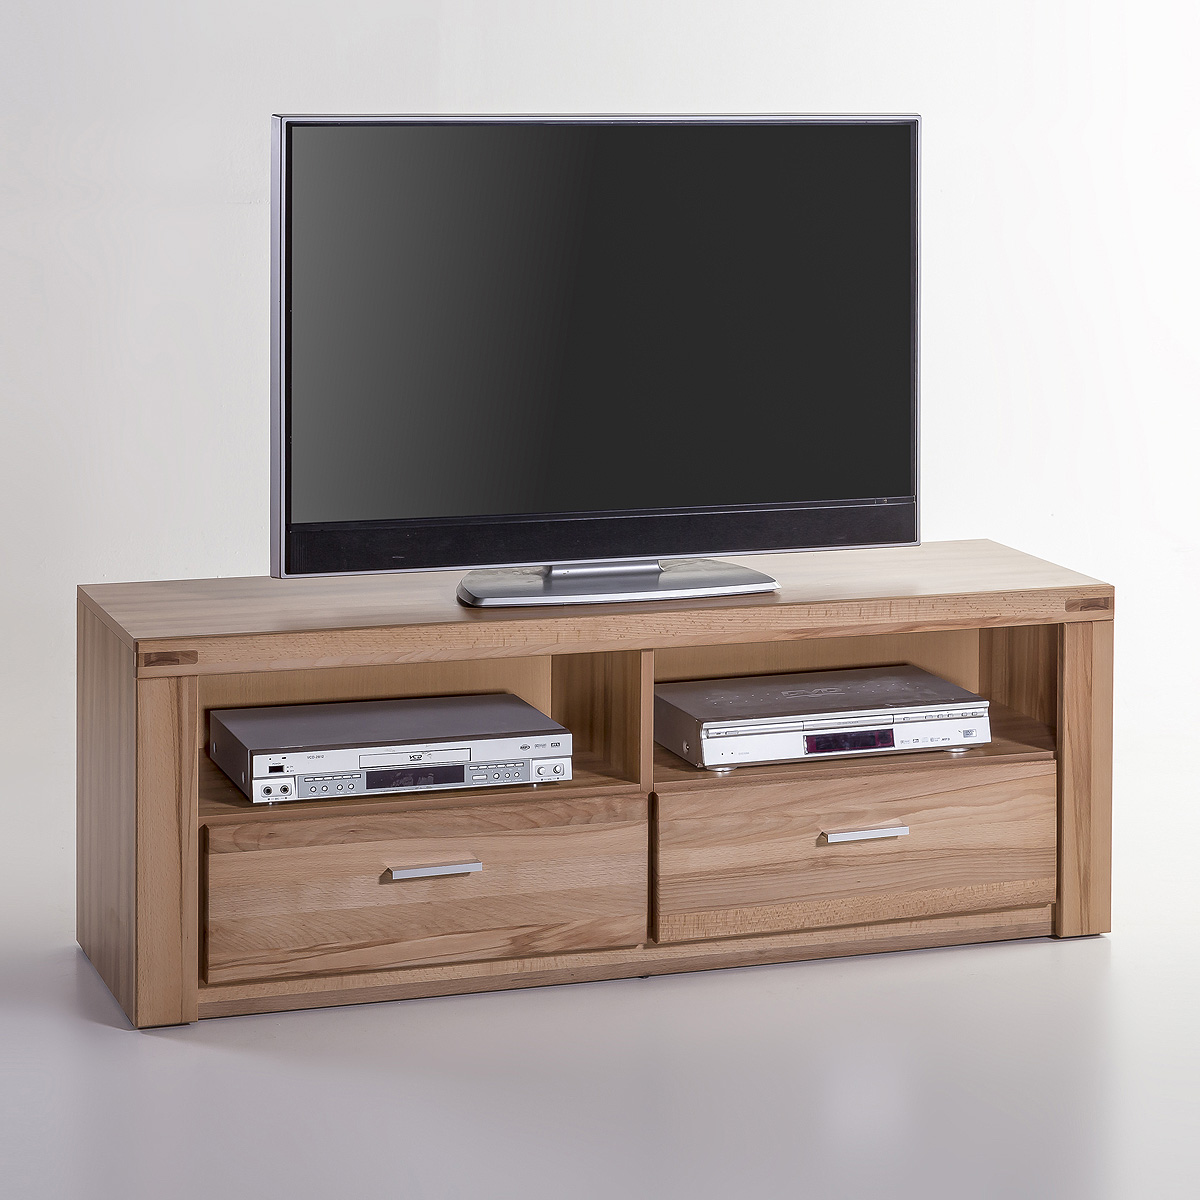 tv kommode tabea tv board lowboard in kernbuche oder wildeiche teil massiv ebay. Black Bedroom Furniture Sets. Home Design Ideas